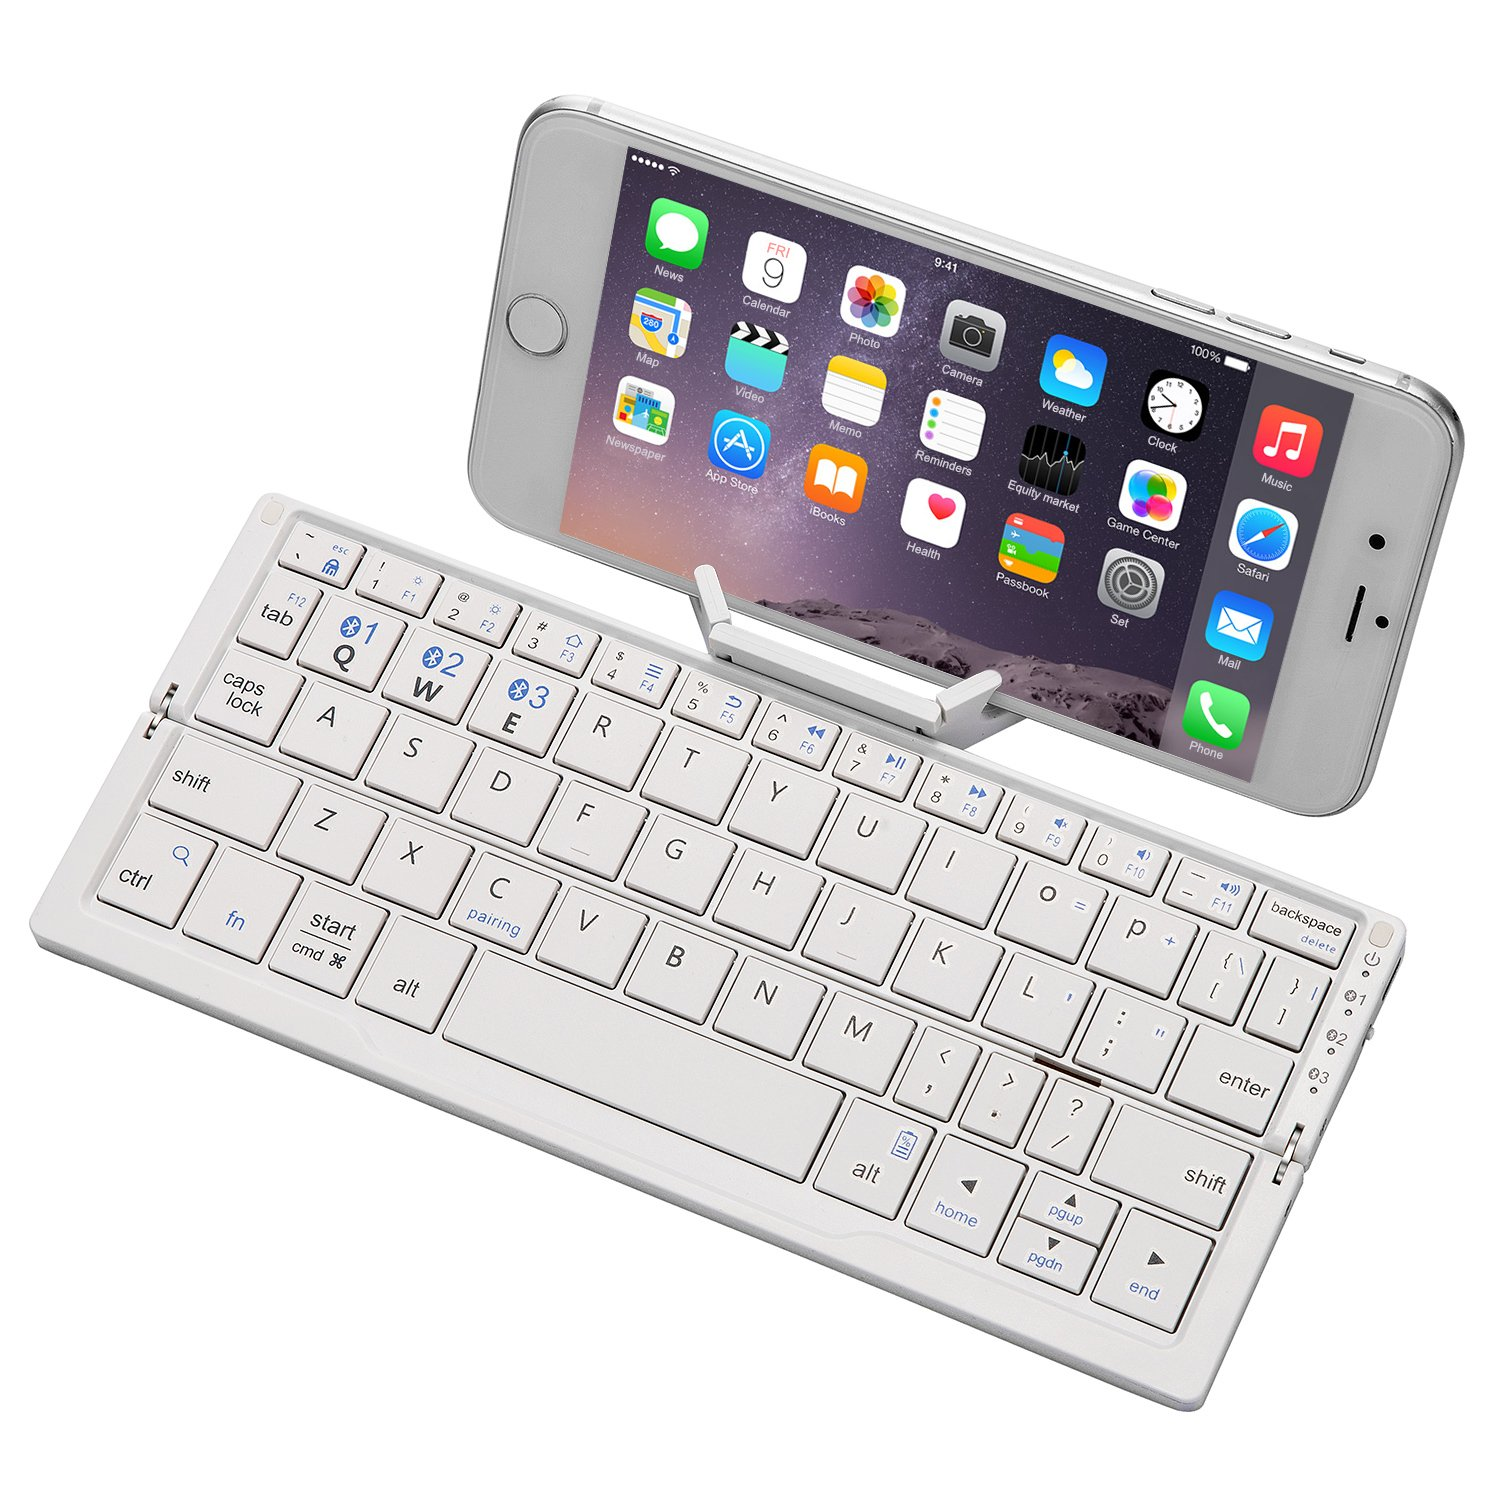 Buy Folding Ergonomic Wireless Keyboard Raydem Portable Bluetooth Keyboard Rechargeable Ultra Slim Pocket Size With Holder Case For Iphone Android Tablets Smartphones Designed For Better Typing Grey In Cheap Price On Alibaba Com